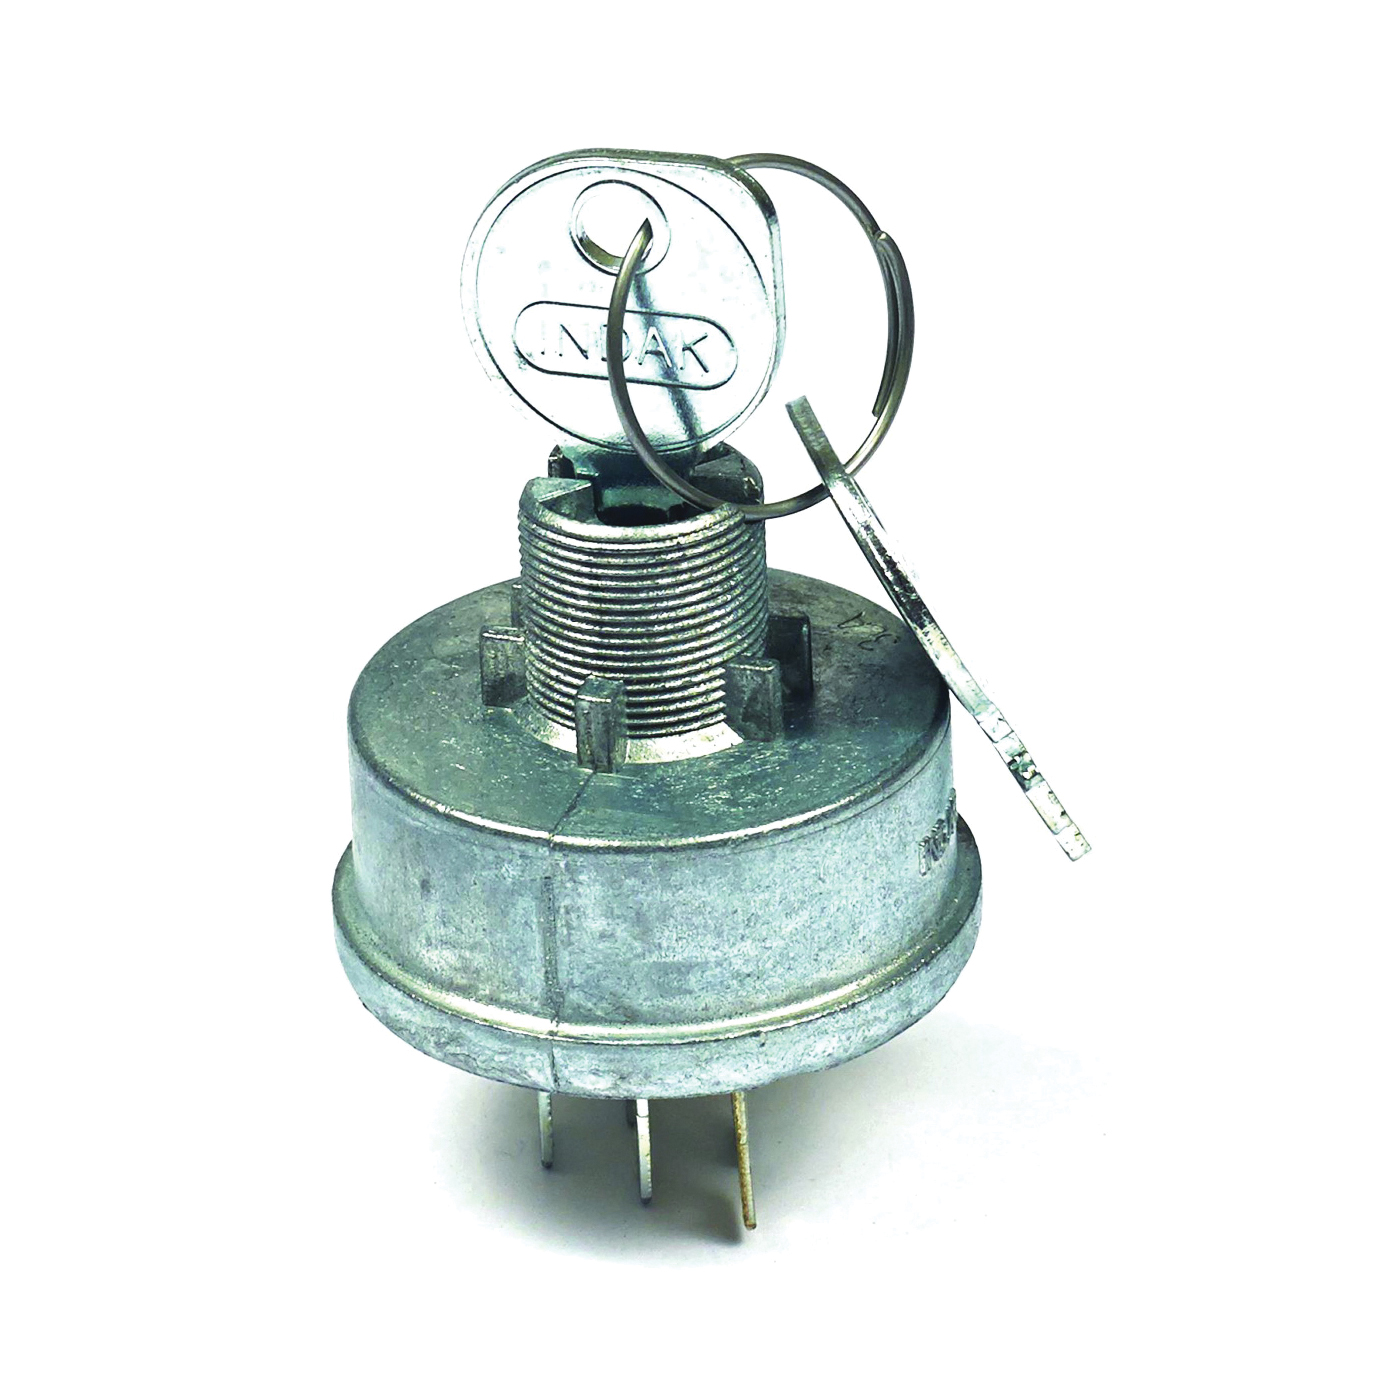 Picture of BRIGGS & STRATTON 5412K Ignition Switch, 7-Terminal, For: Briggs & Stratton Engines